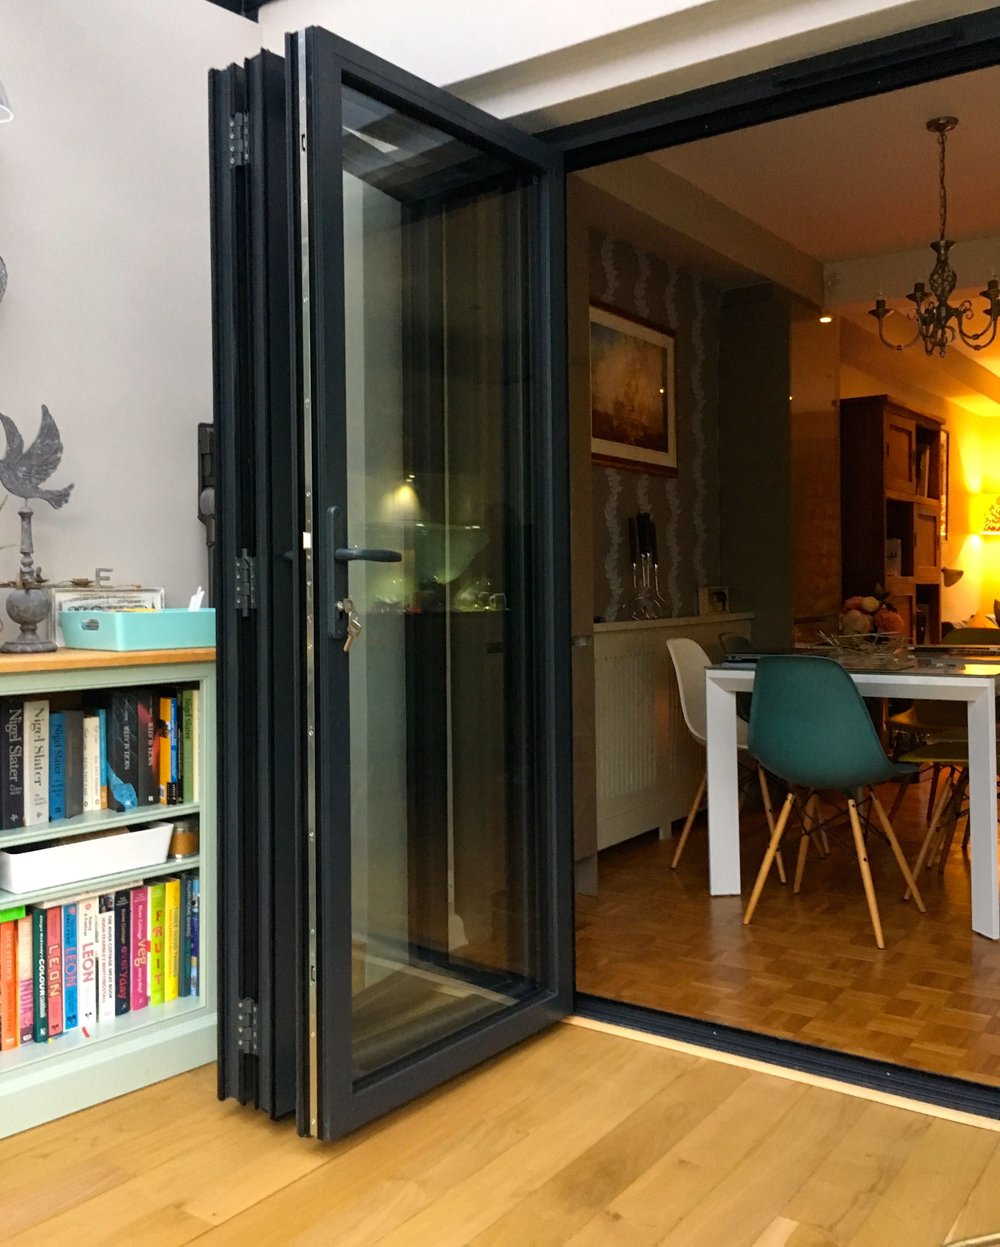 the internal bifold doors